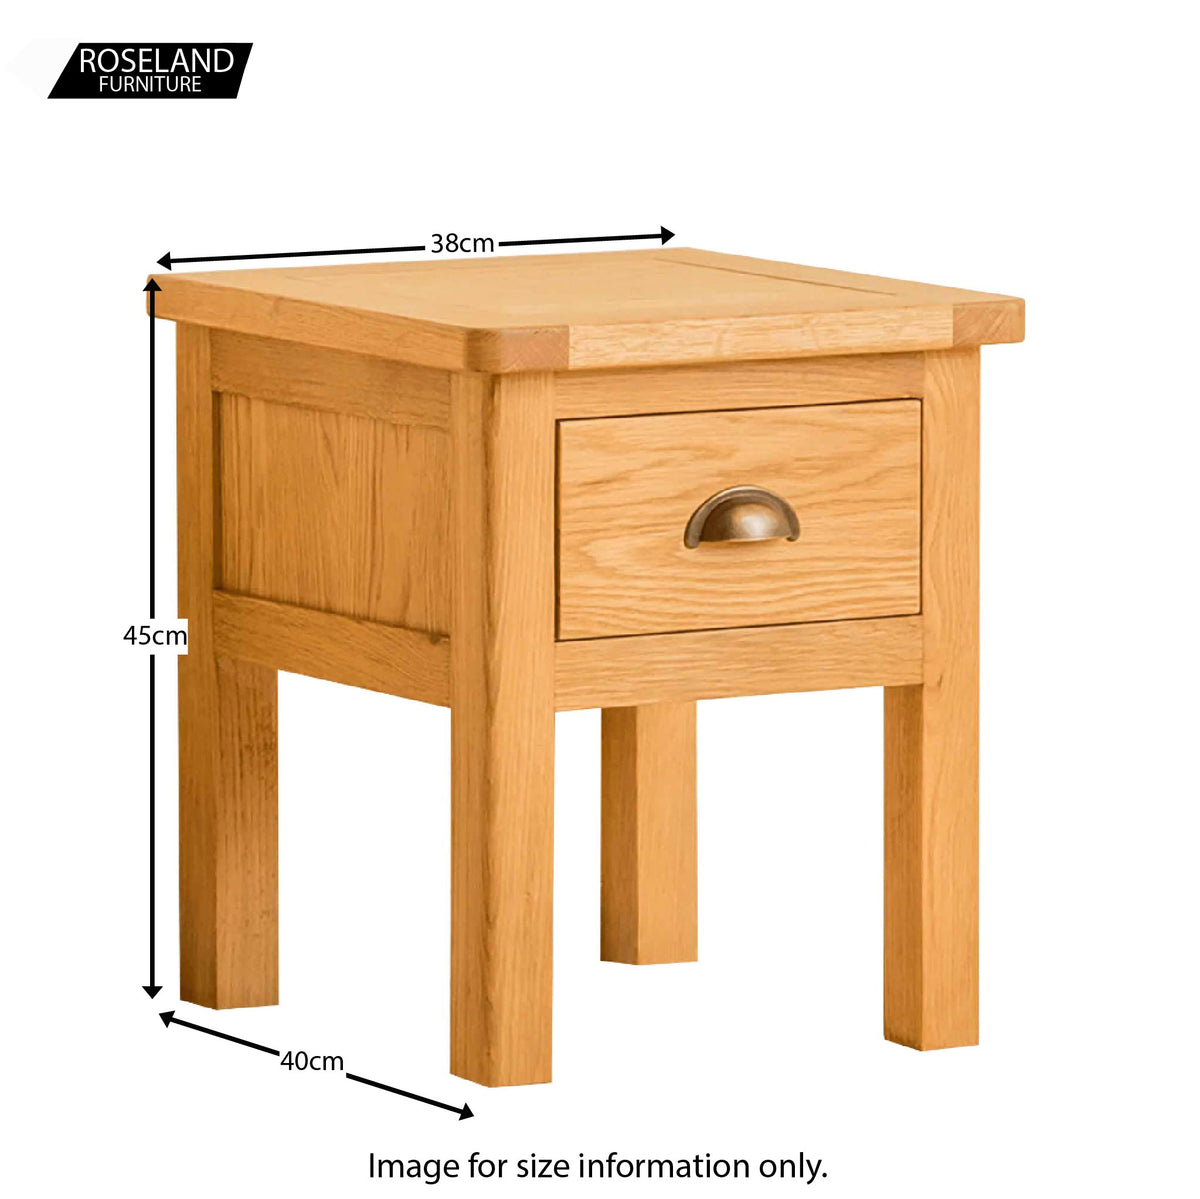 Roseland Oak Lamp Table - Size Guide